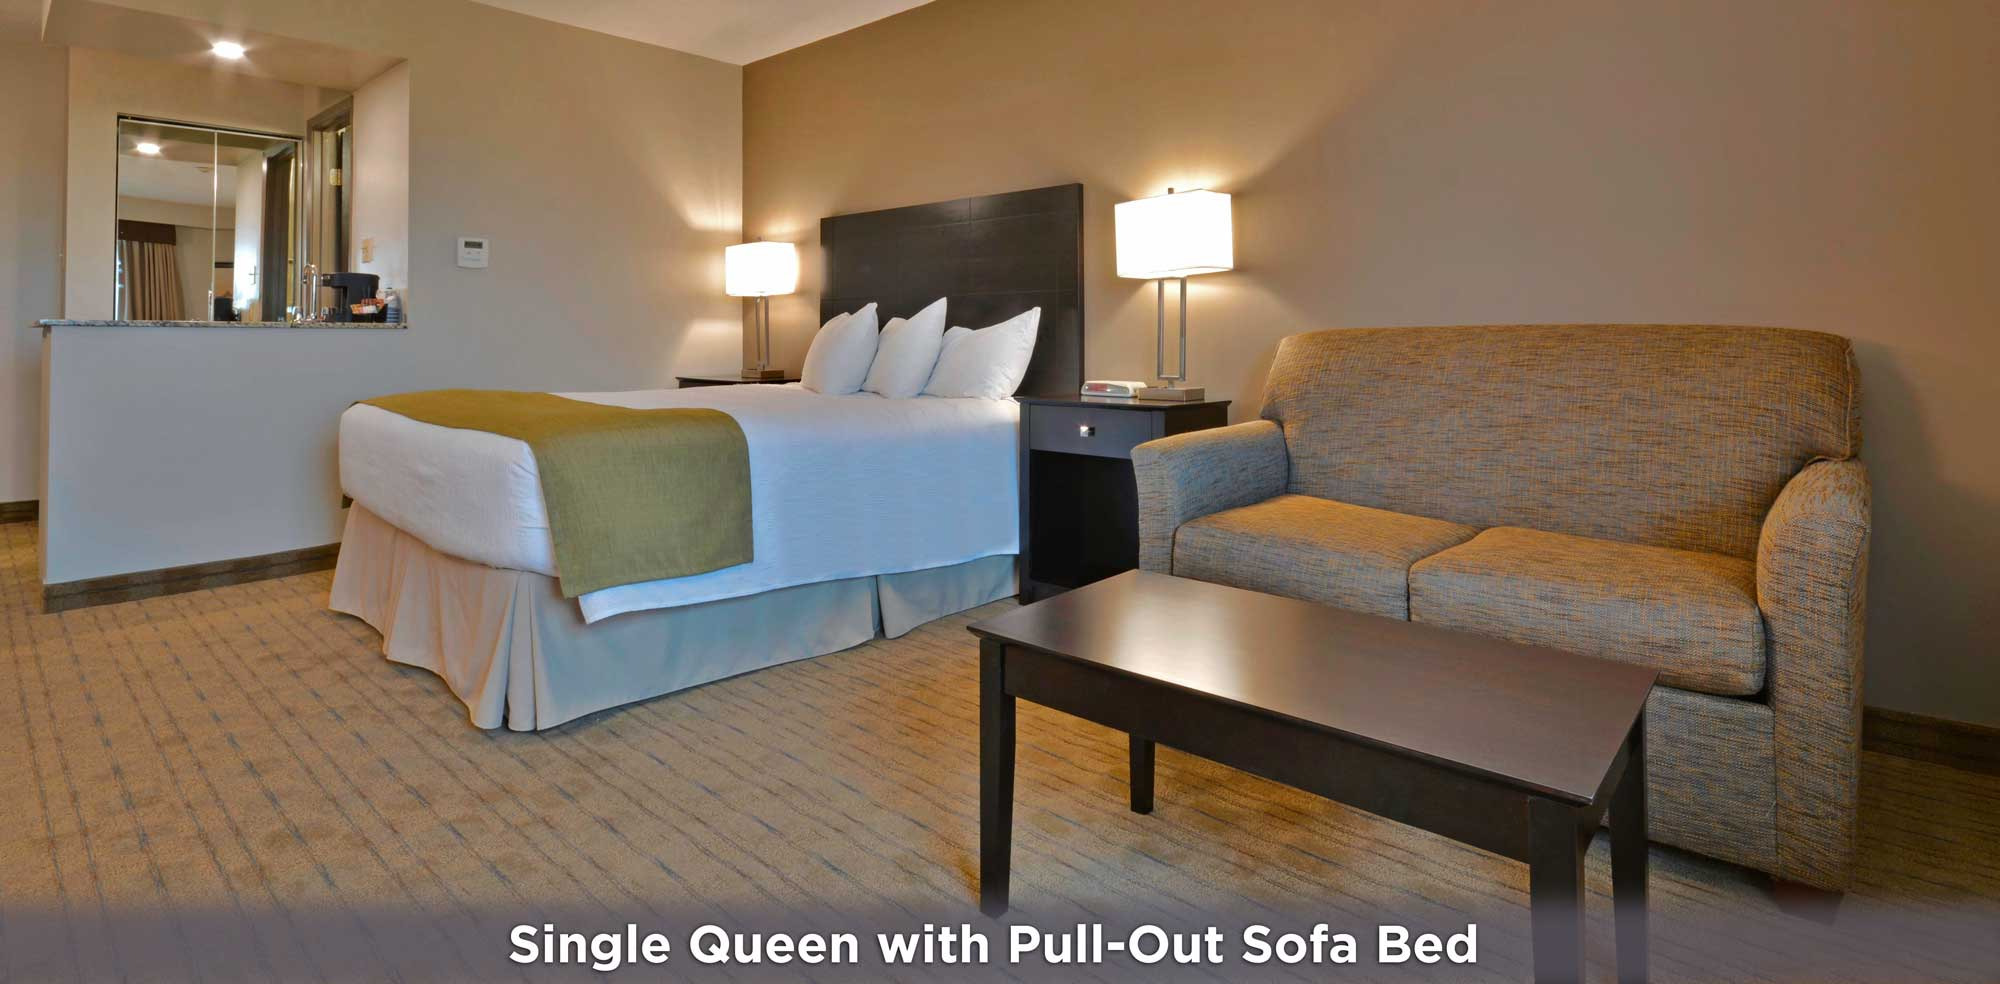 Single Queen with Pull-Out Sofa Bed